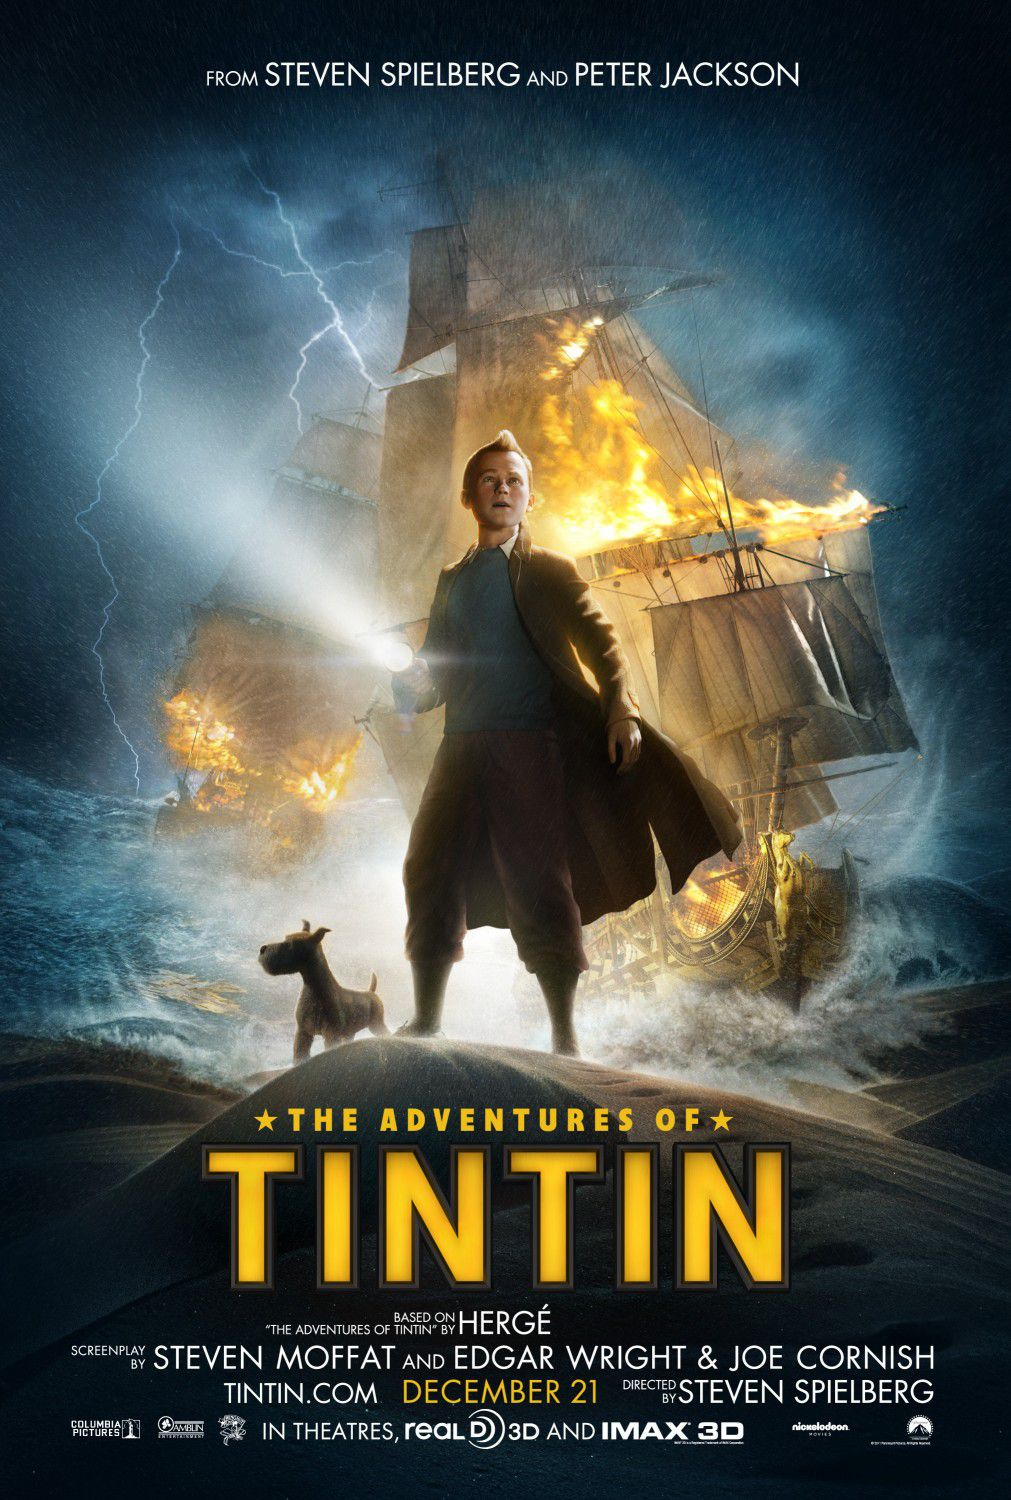 Light night sea boat - Le Avventure di Tintin il segreto dell'Unicorno - Adventures of Tintin secret of the Unicorn - live action film poster